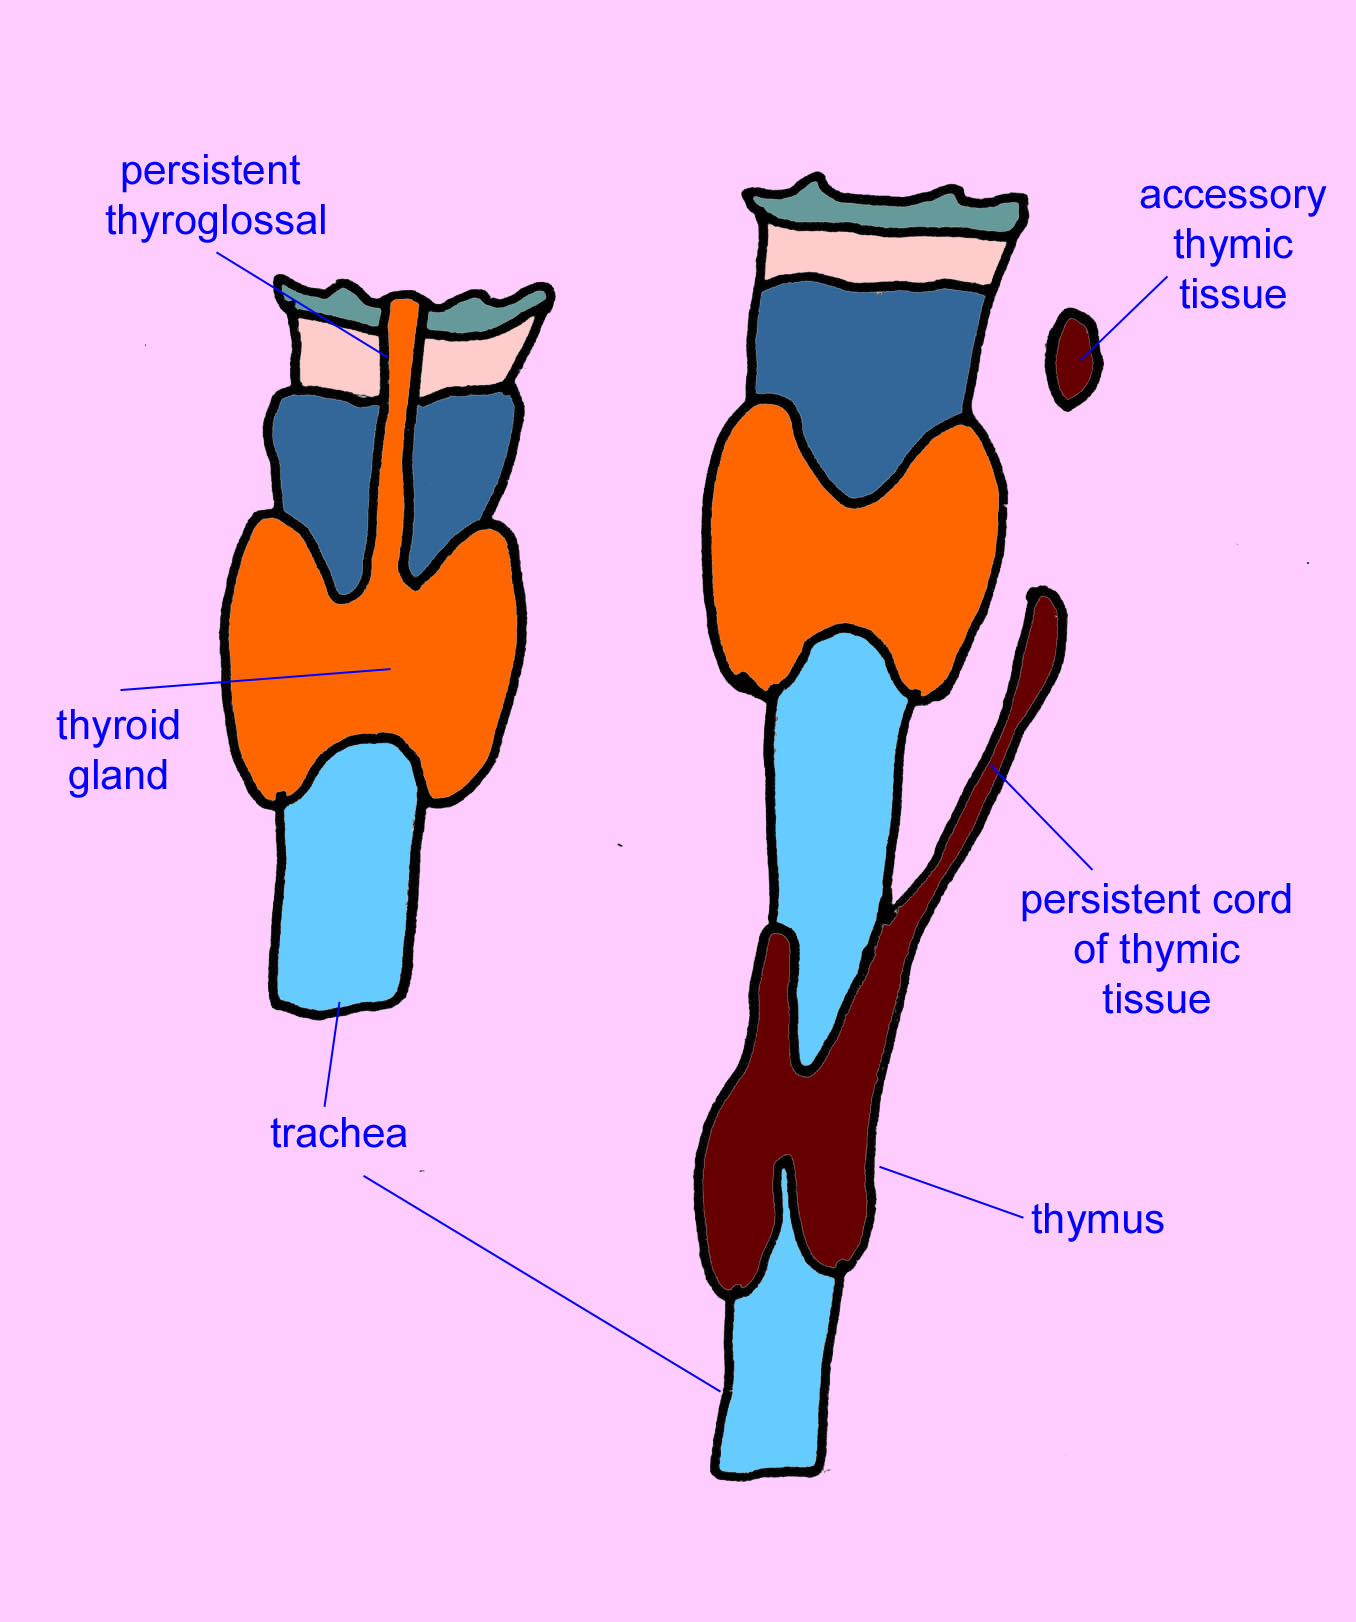 Pathology Outlines Thymic Tissue Within Thyroid Gland